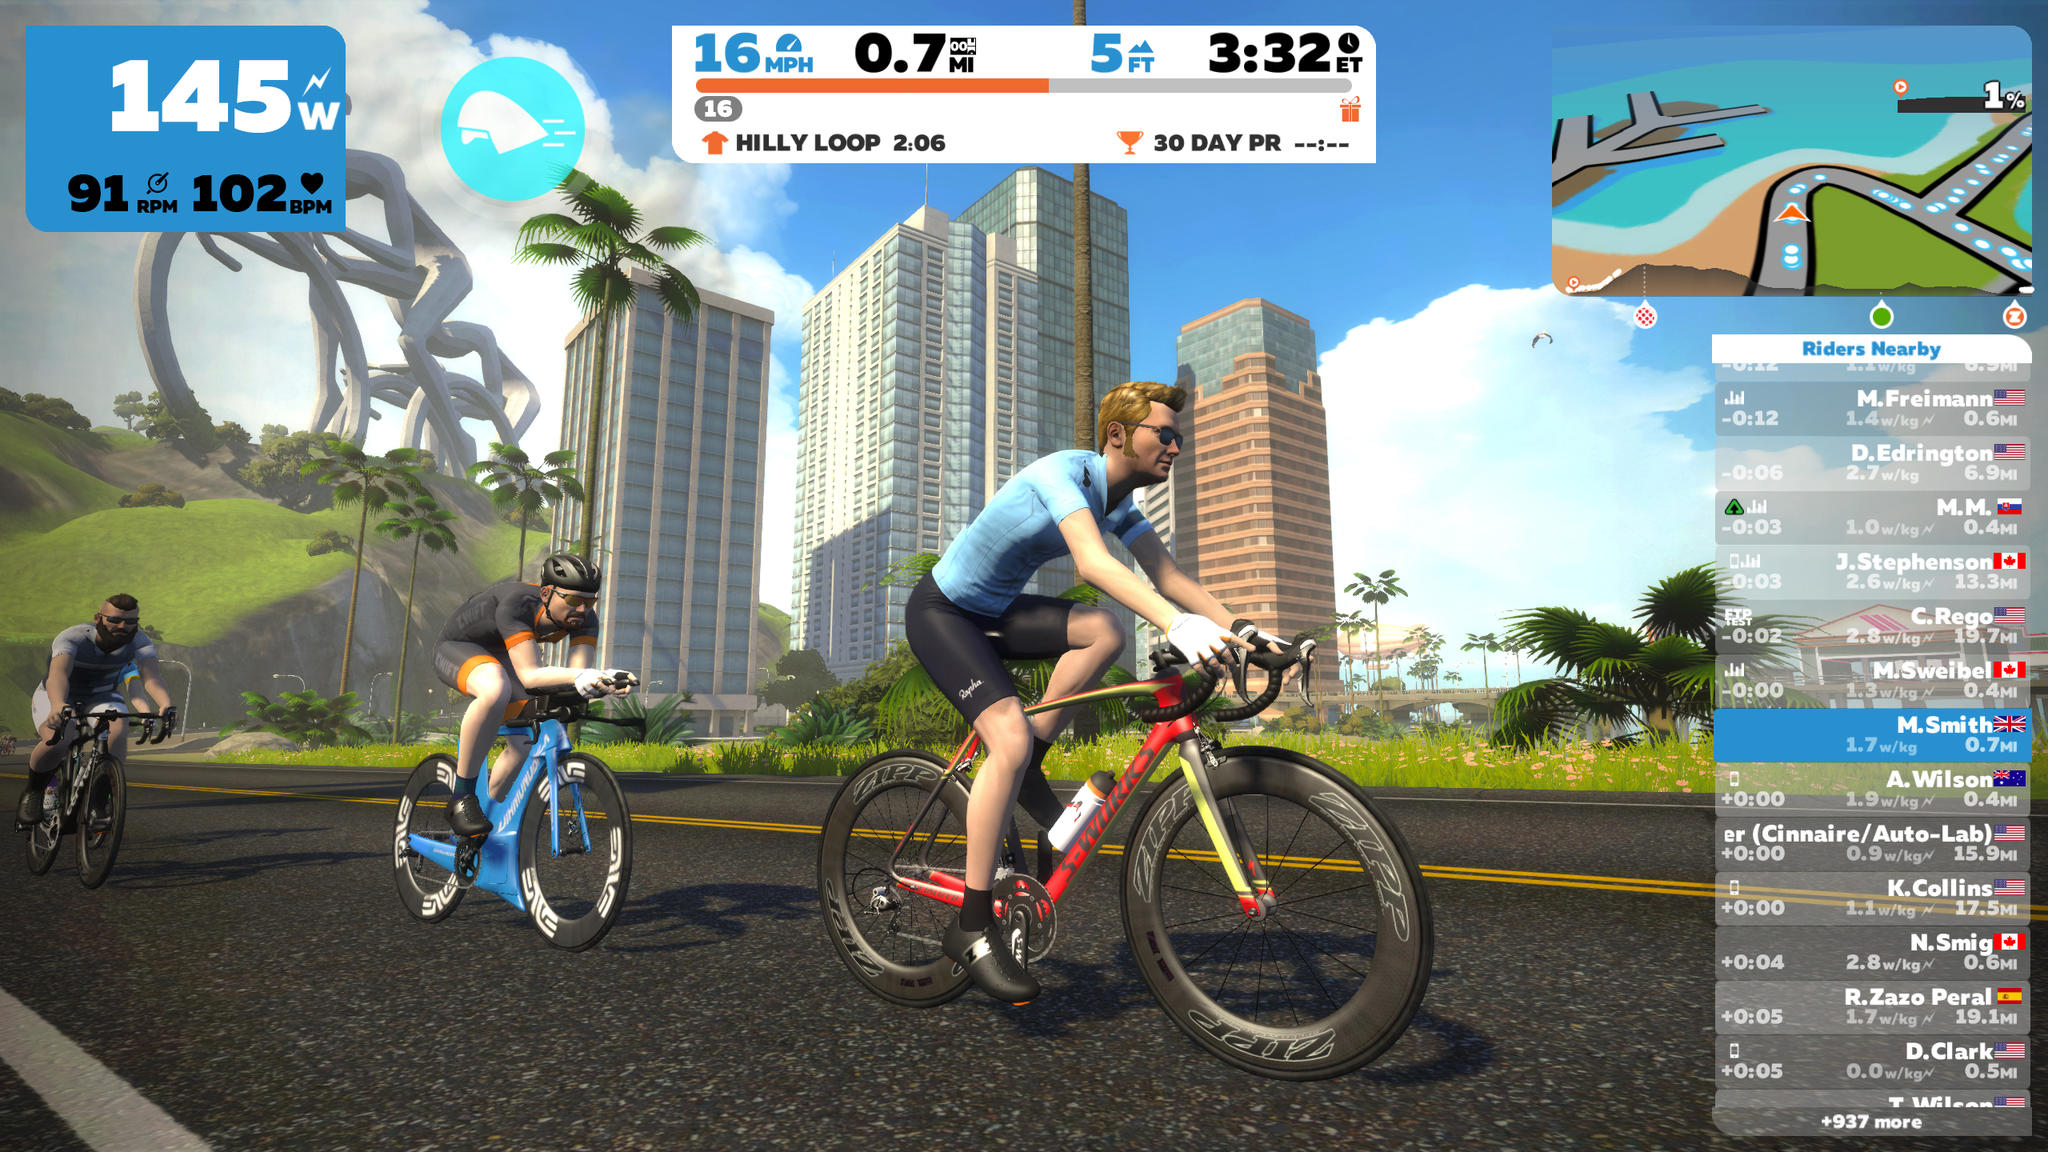 What is Zwift and how do I get started? - 360 Cycles